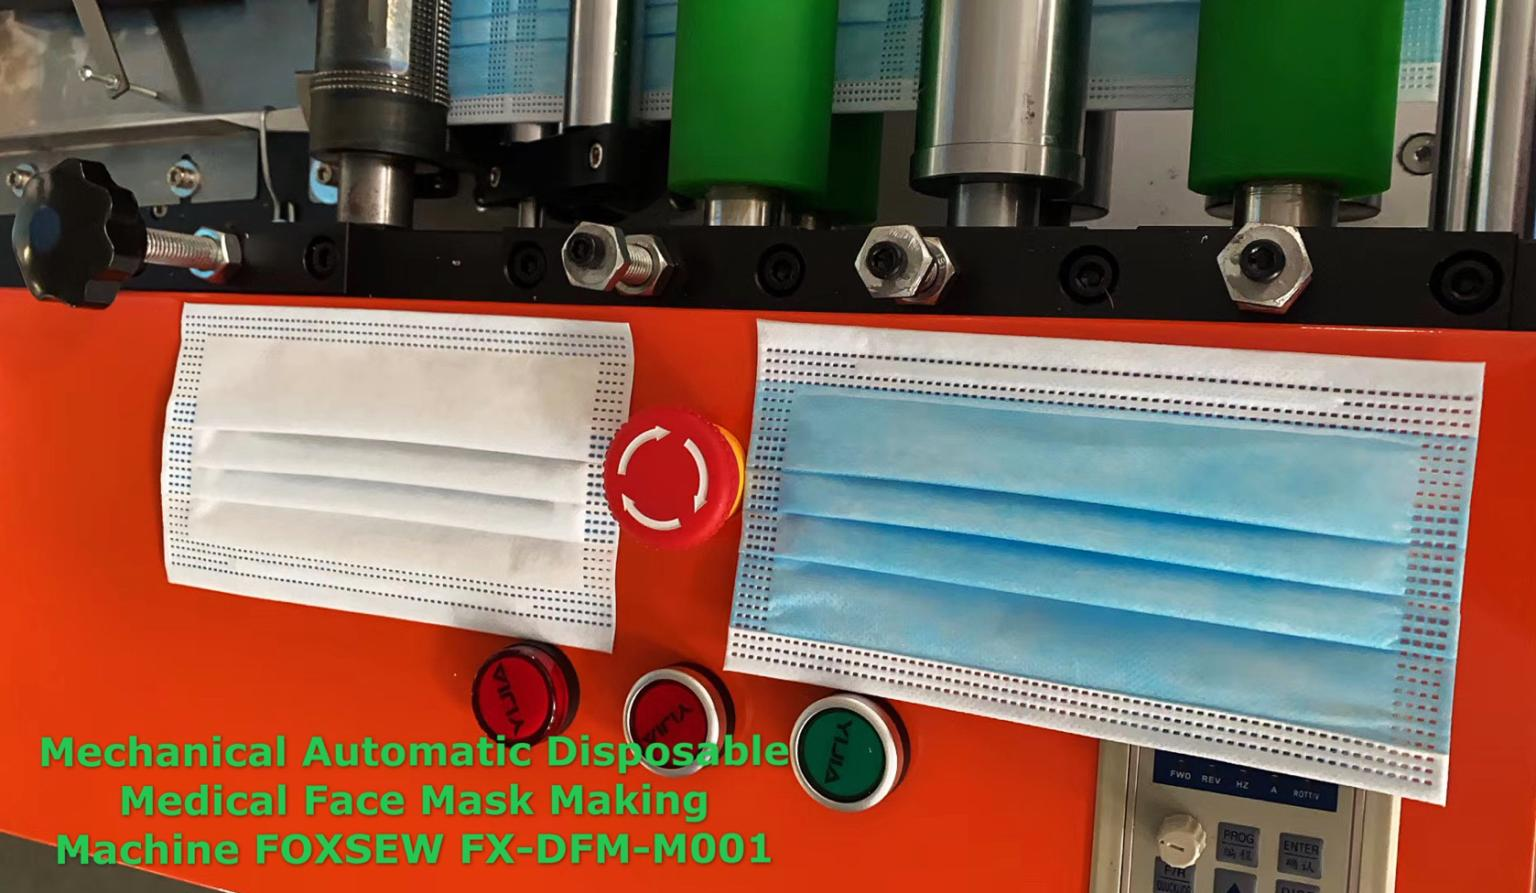 Mechnical Automatic Disposable Medical Face Mask Making Machine -1